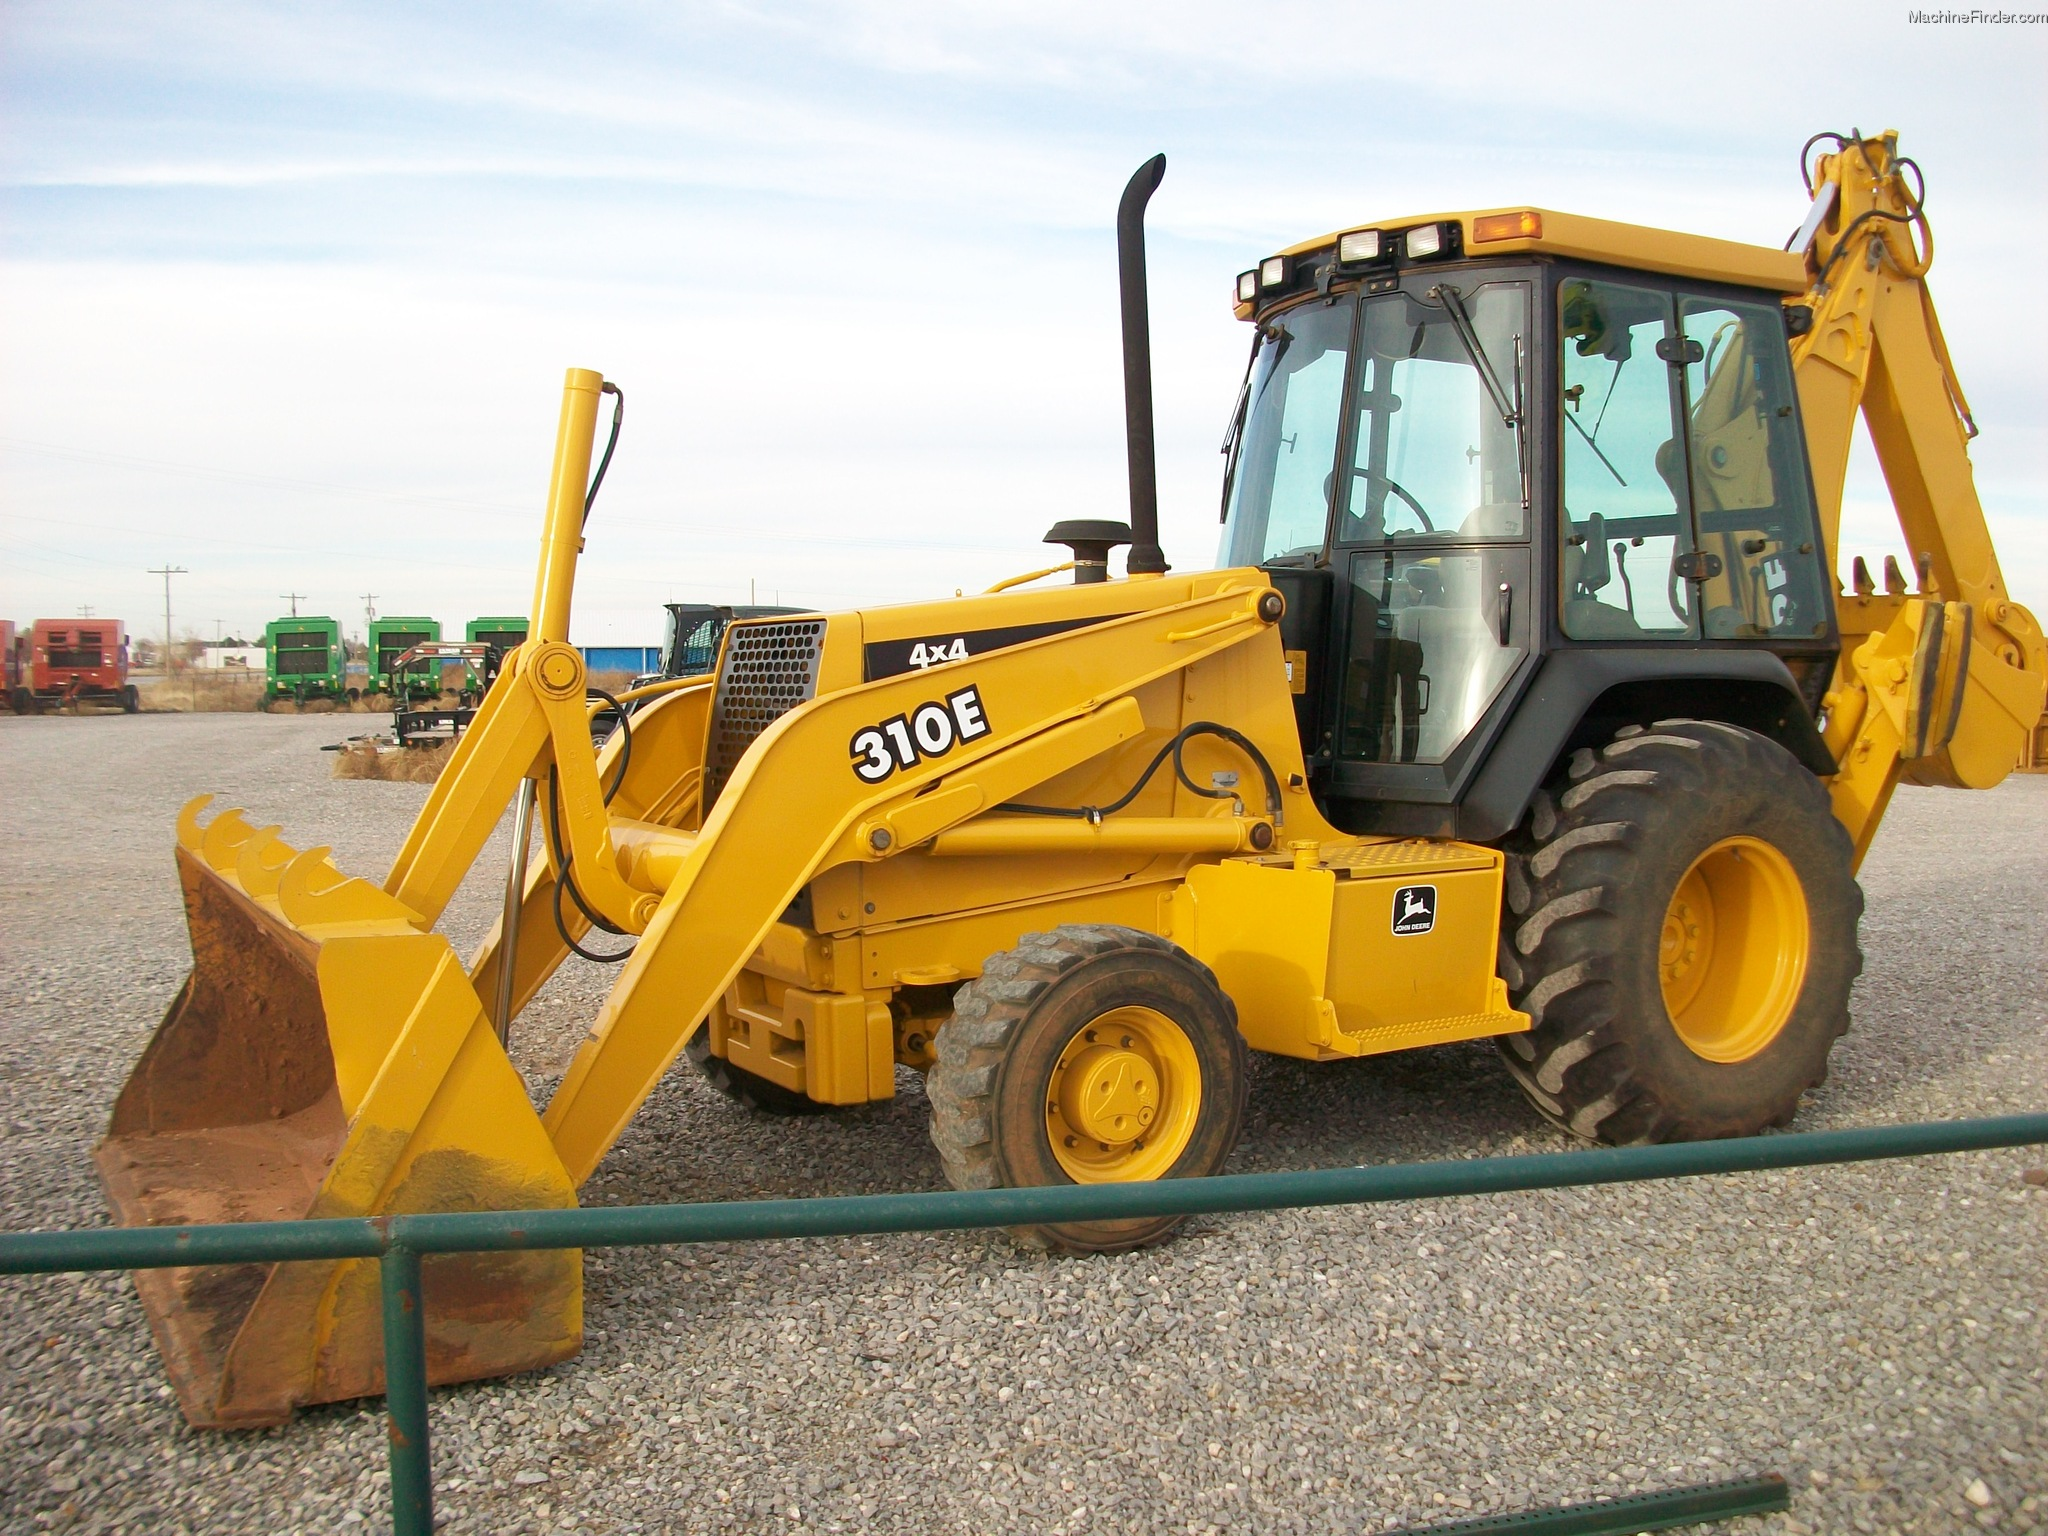 John Deere Backhoe Related Keywords & Suggestions - John ...